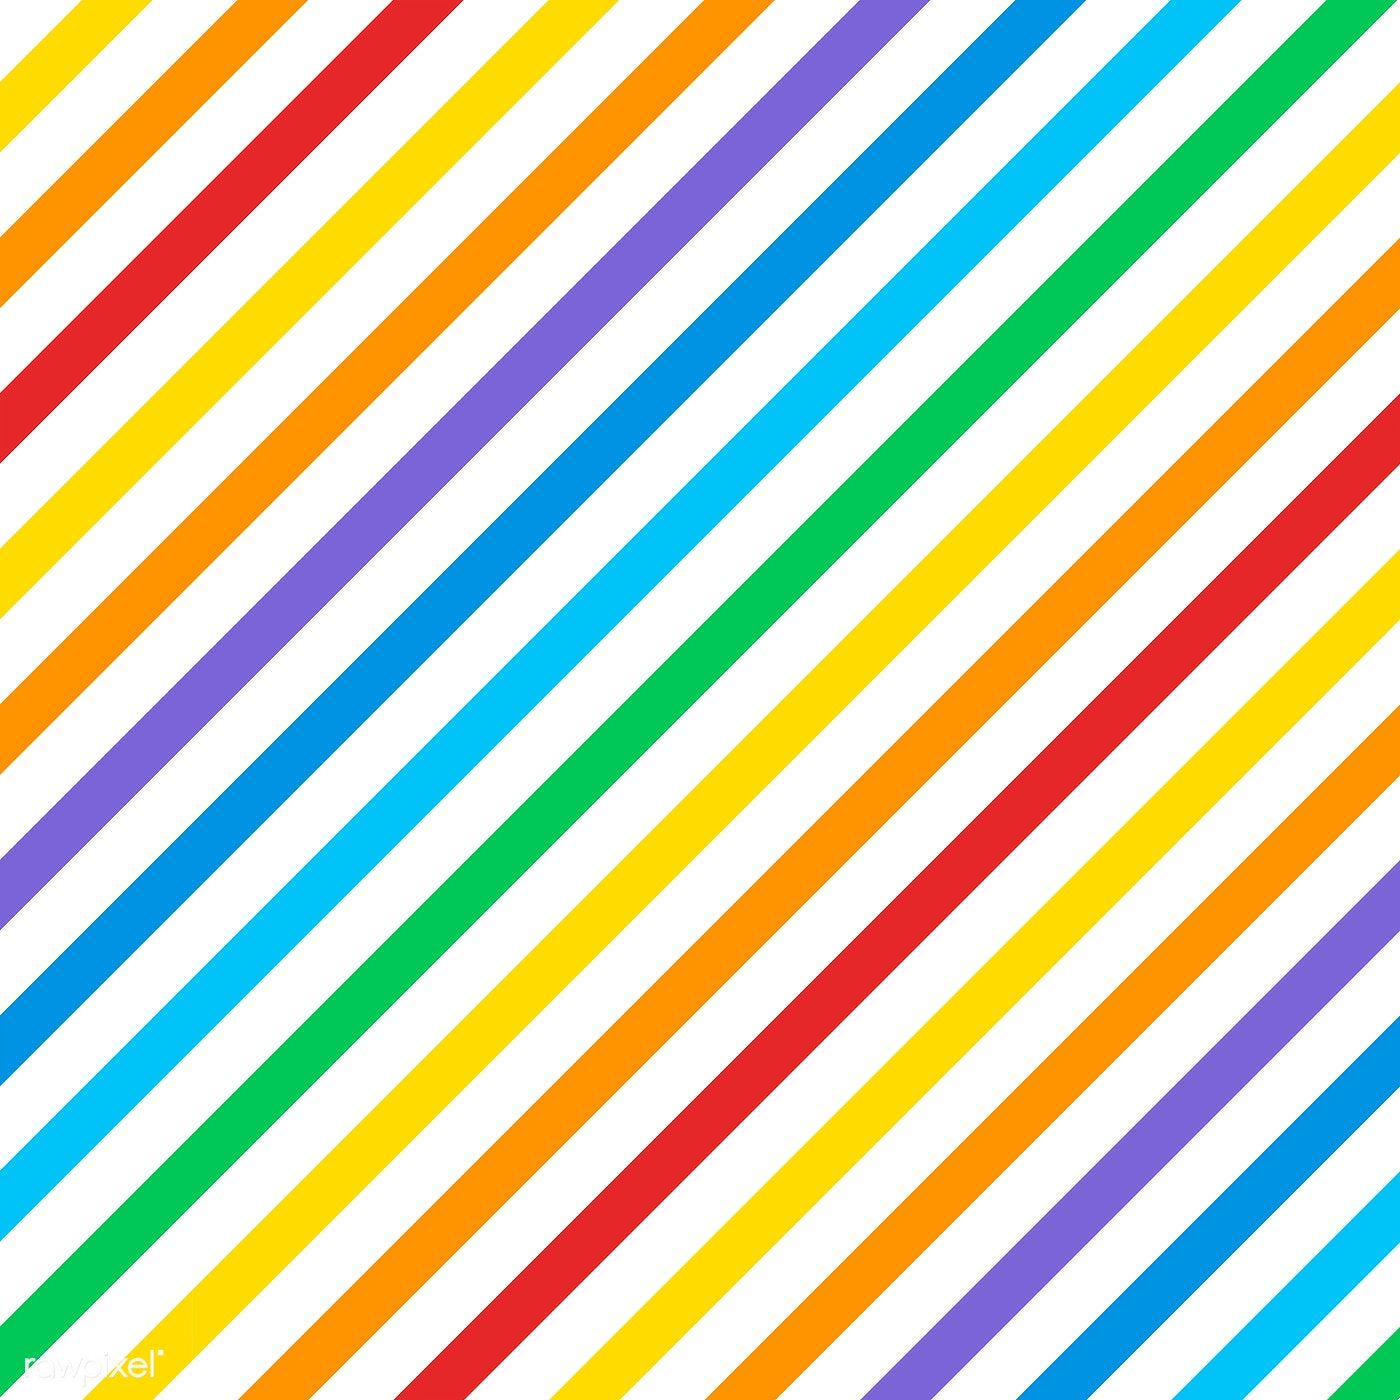 Seamless Colorful Diagonal Stripes Pattern Vector Free Image By Rawpixel Com Manotang In 2020 Diagonal Stripes Pattern Stripes Pattern Vector Free